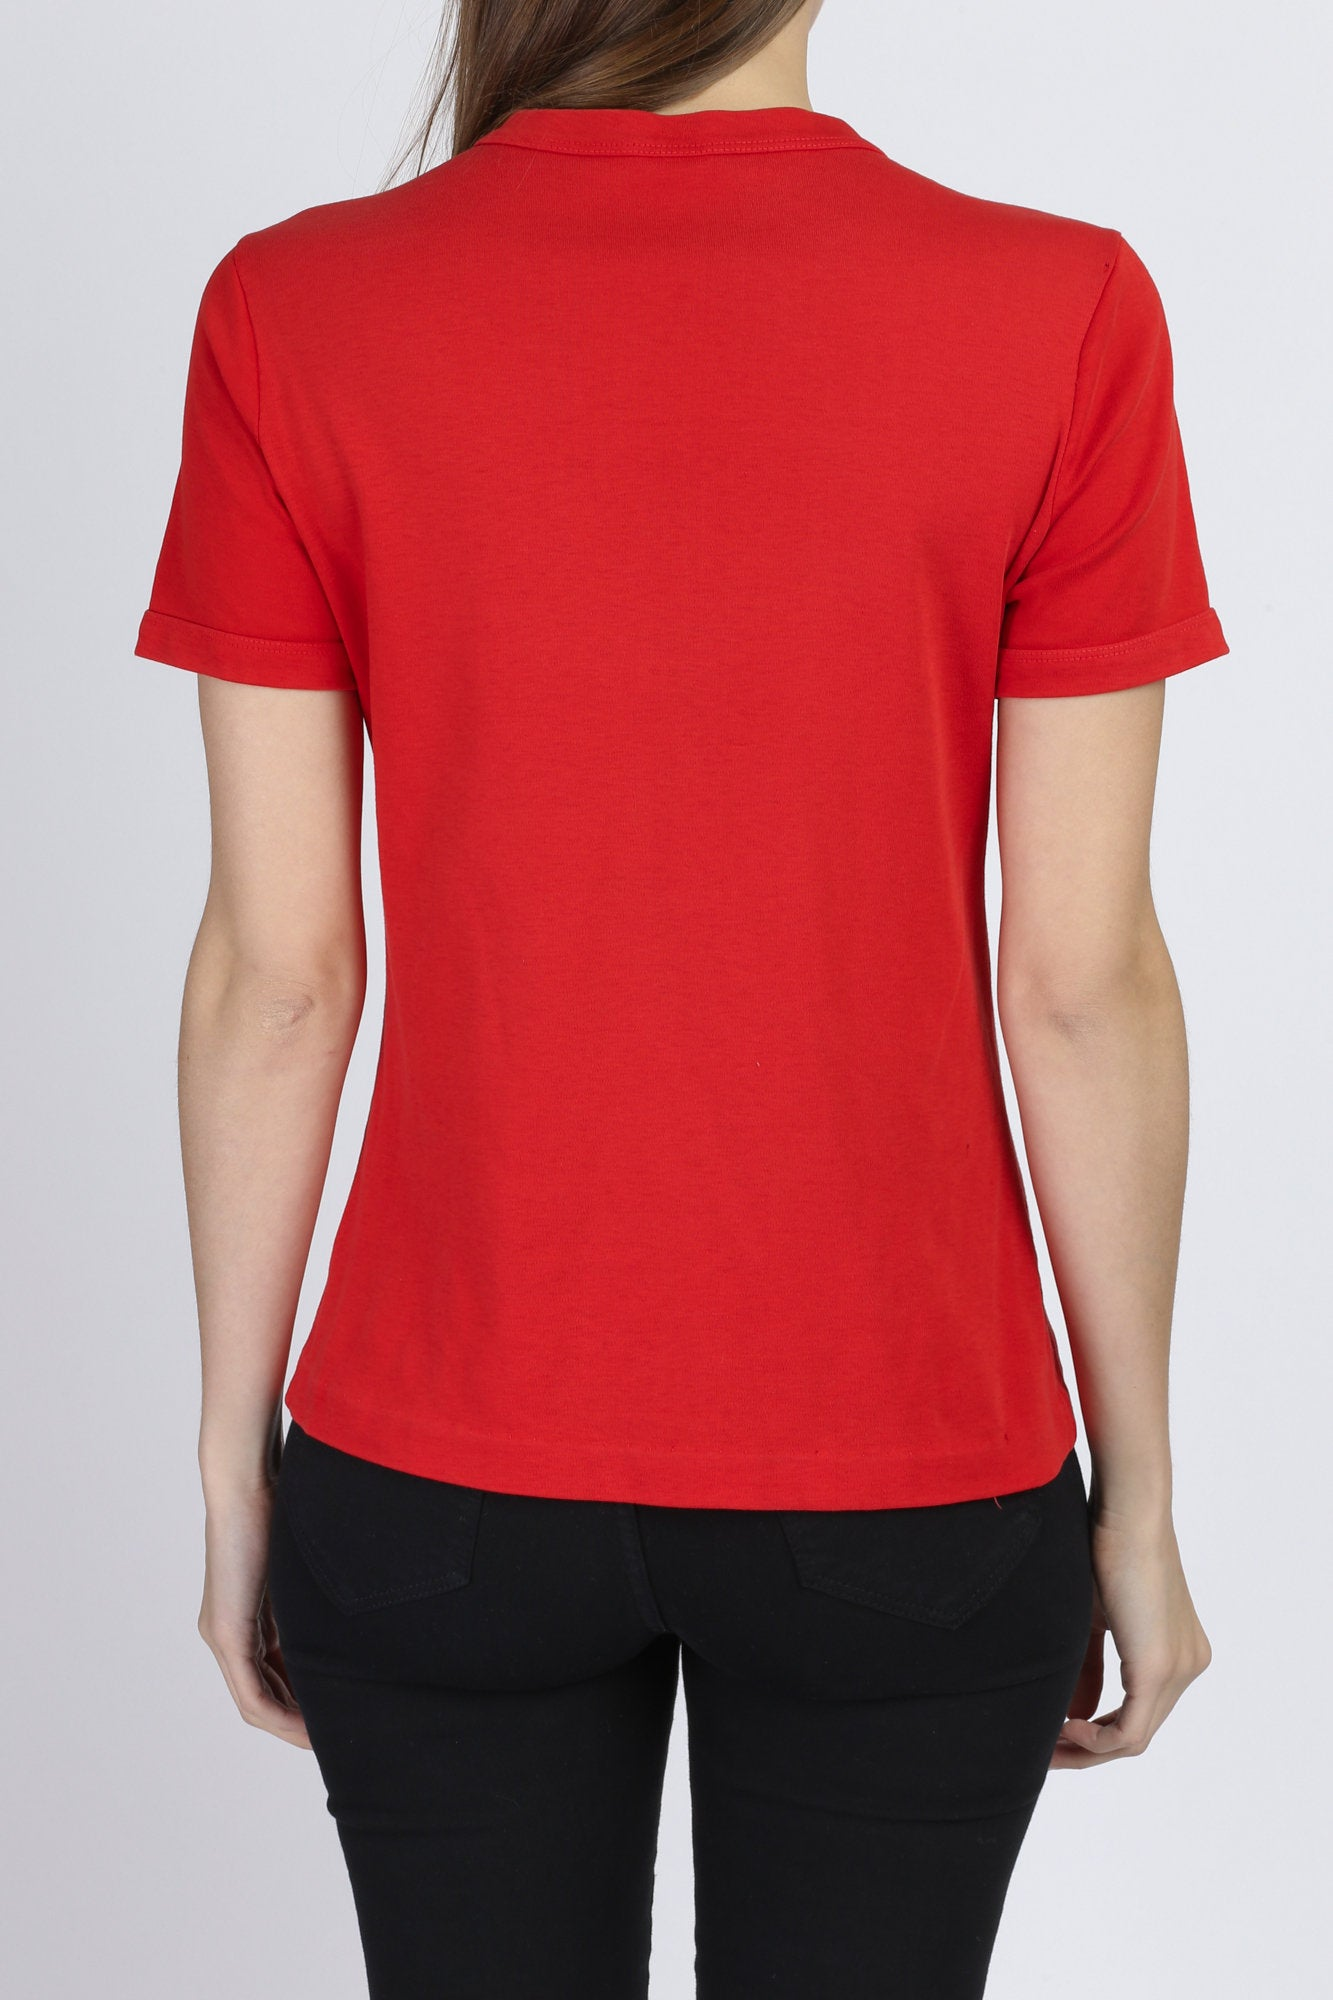 70s Red Henley Top - Medium